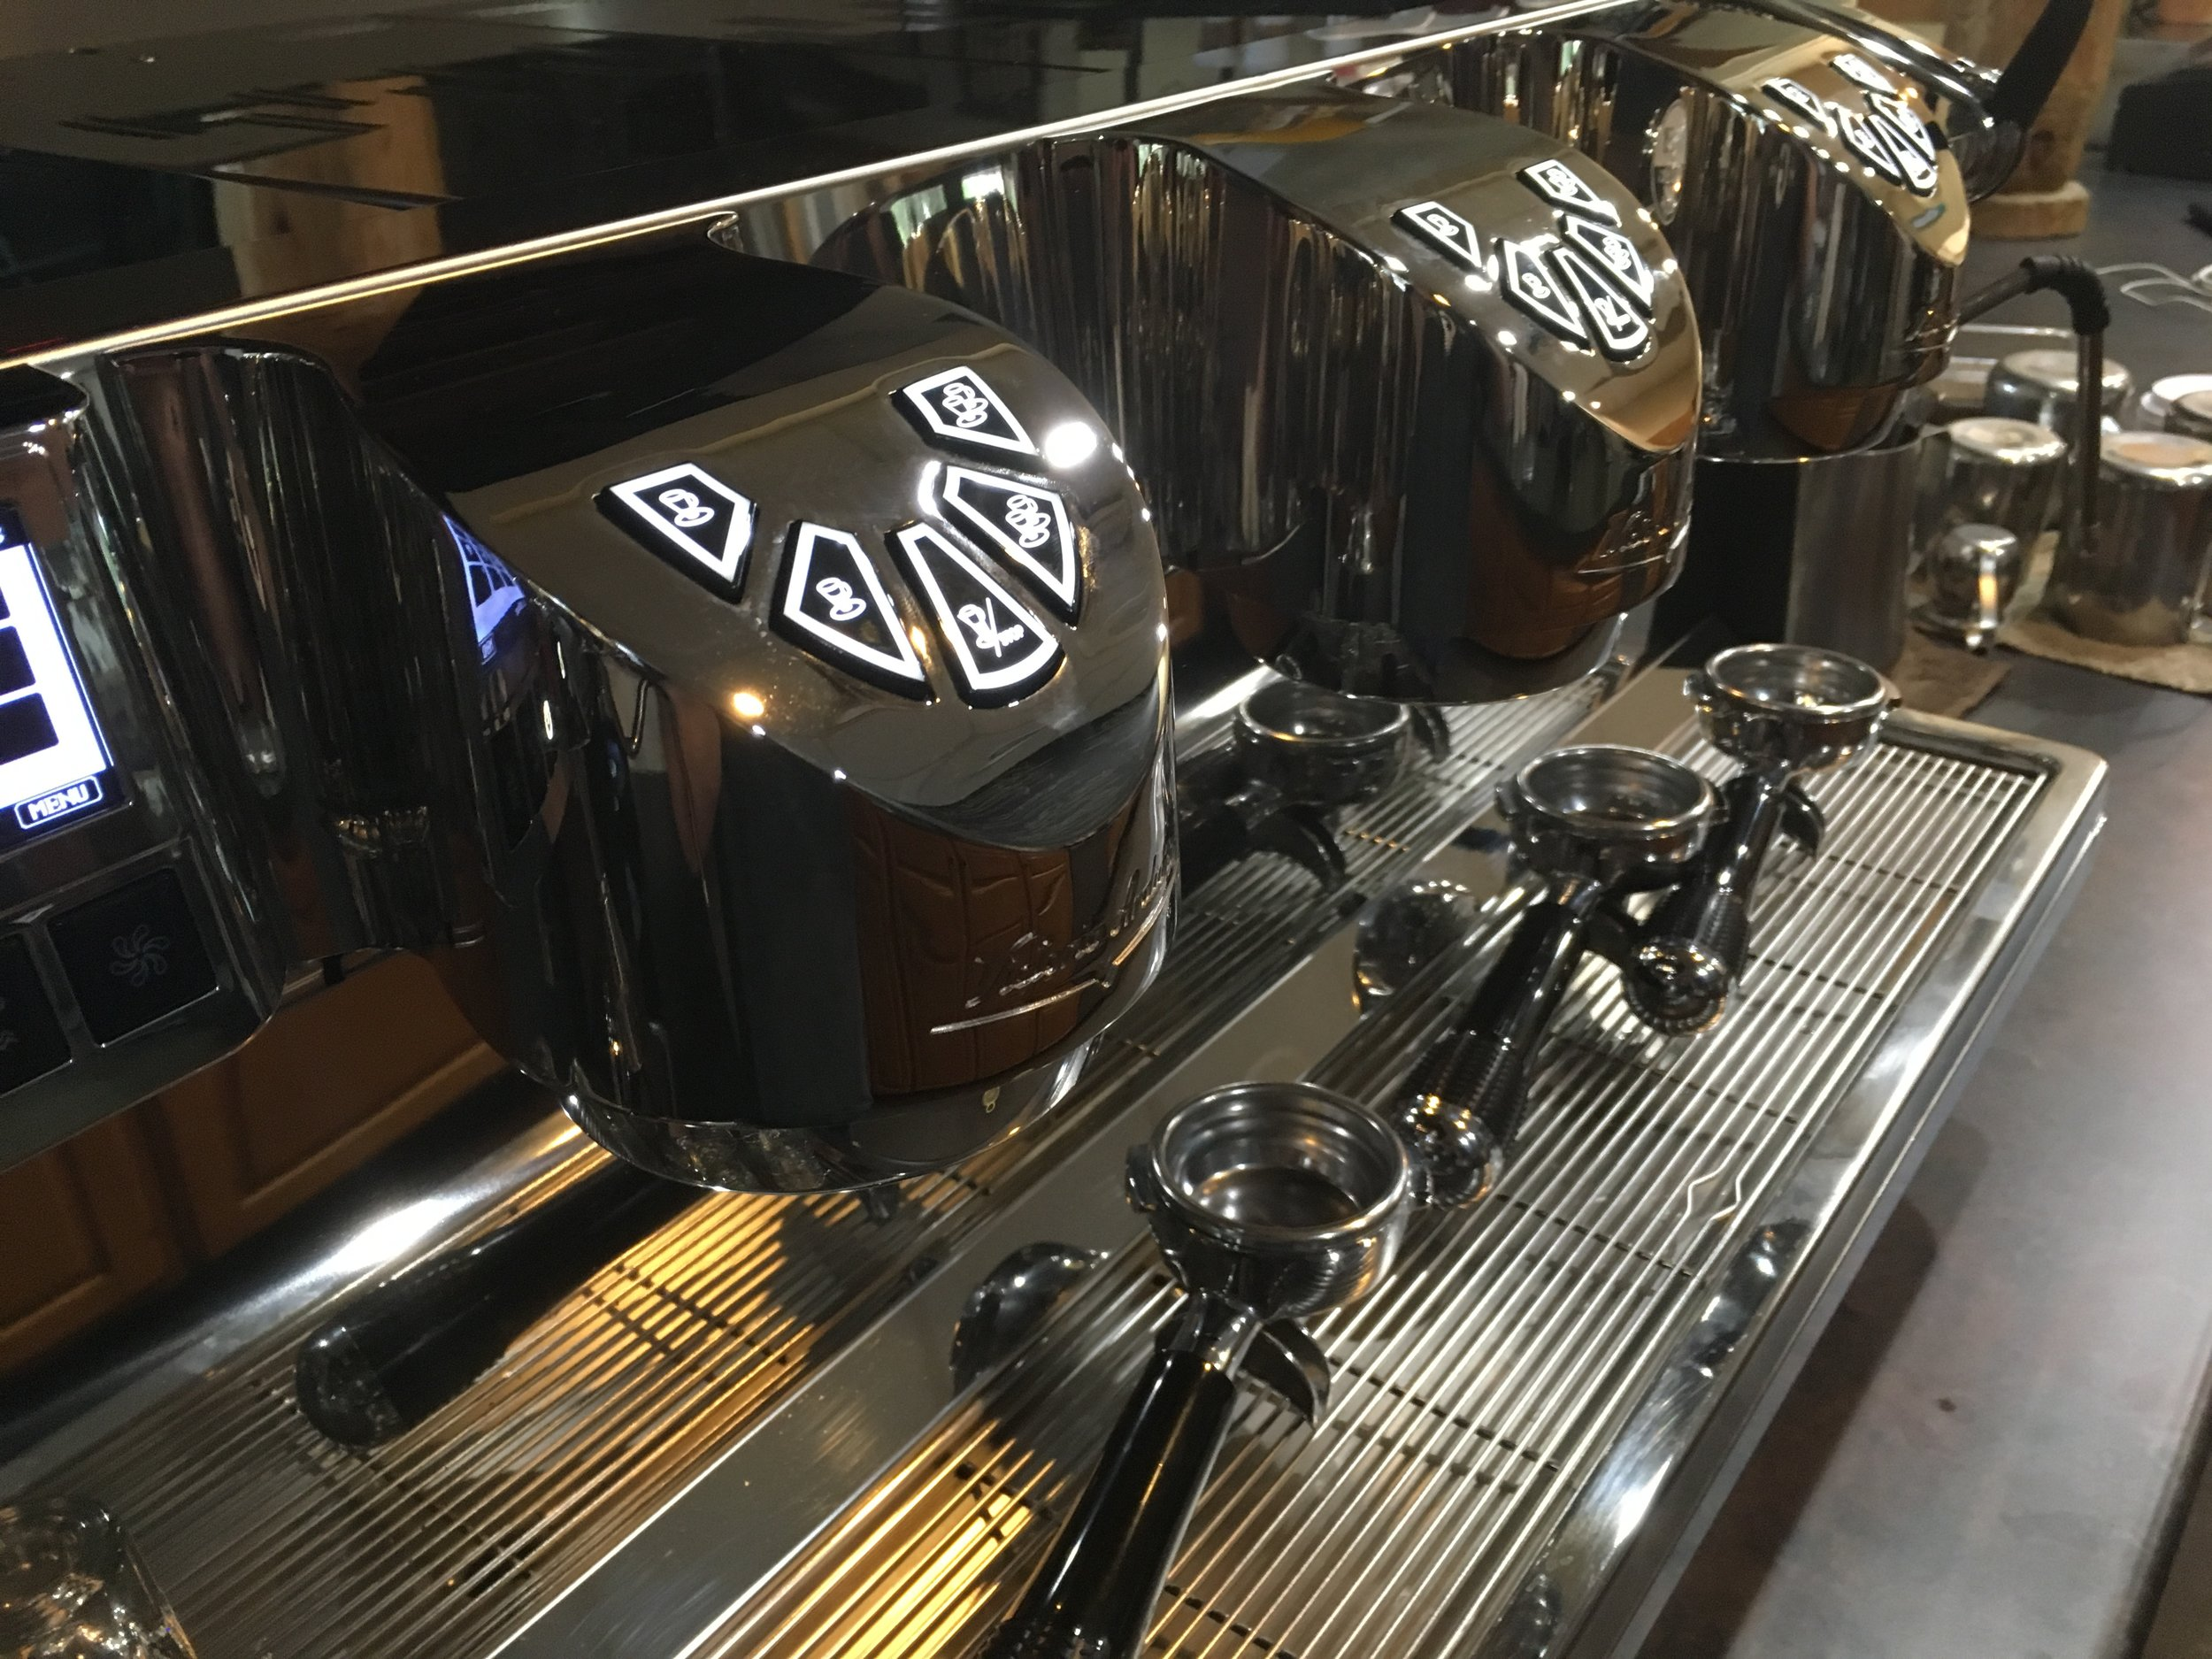 Hand crafted espresso